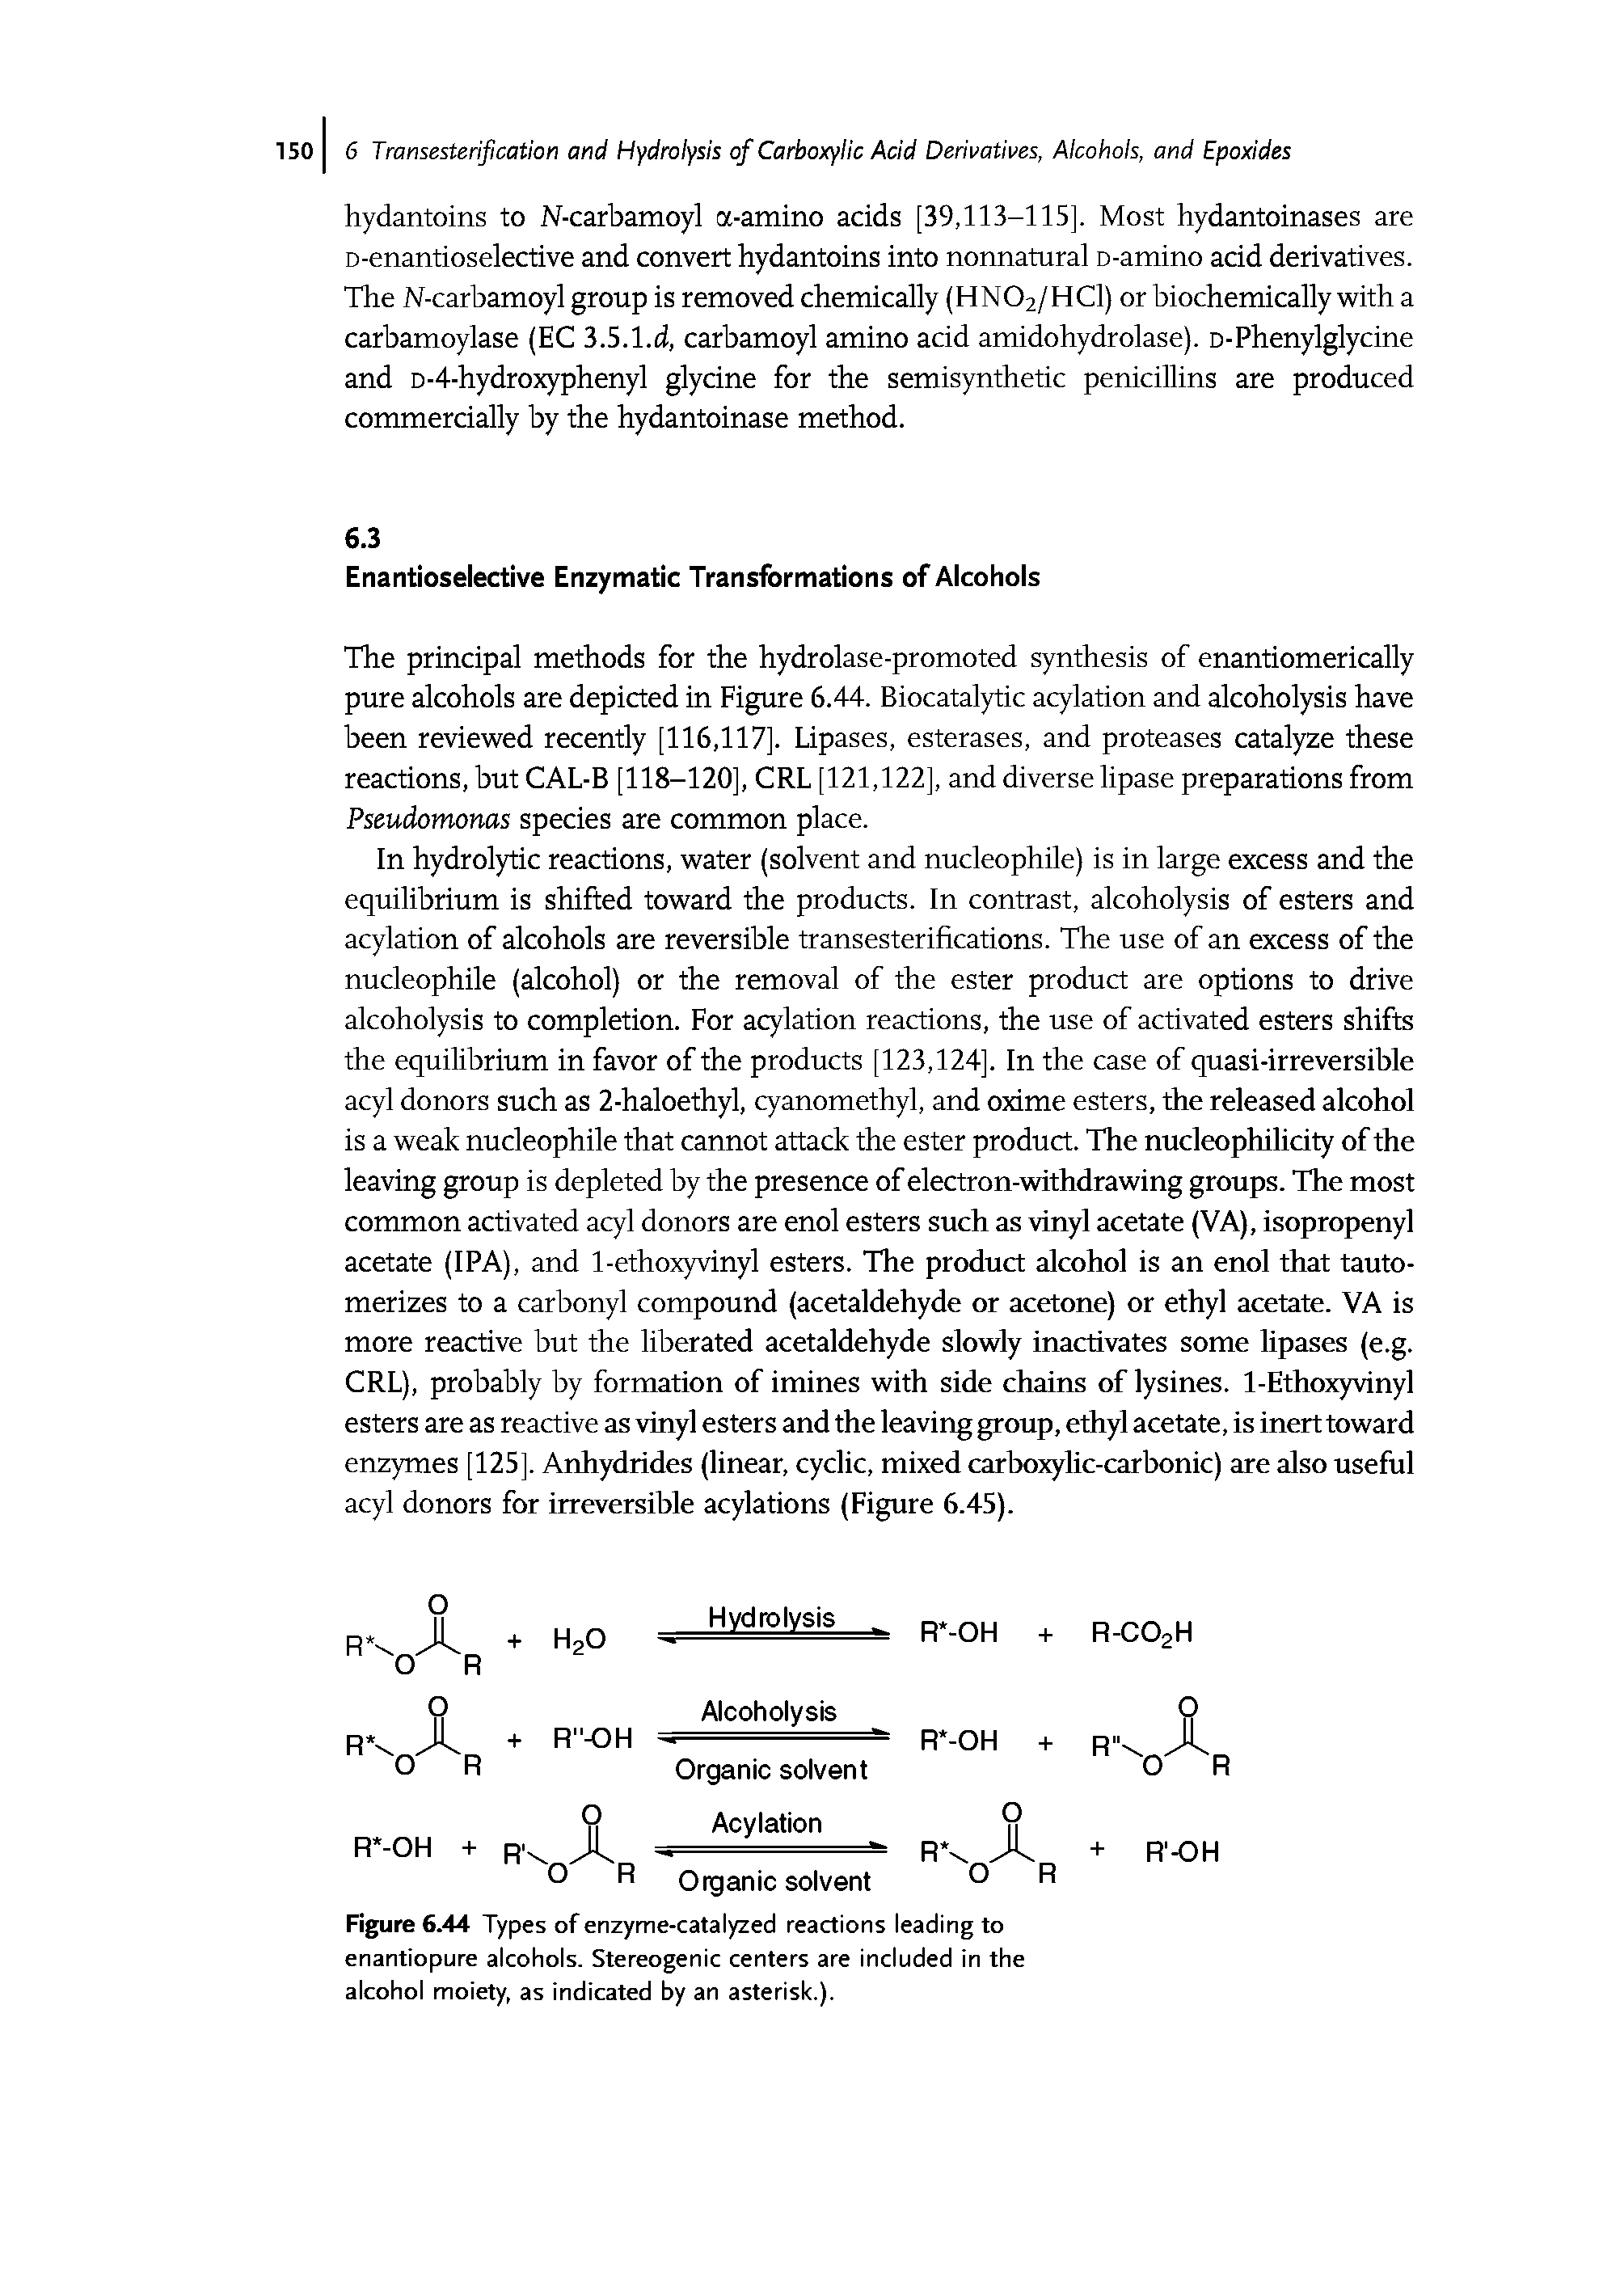 "Figure 6.44 Types of <a href=""/info/enzyme_catalyzed_reactions"">enzyme-catalyzed reactions</a> leading to enantiopure alcohols. <a href=""/info/stereogenic_center"">Stereogenic centers</a> are included in the alcohol moiety, as indicated by an asterisk.)."